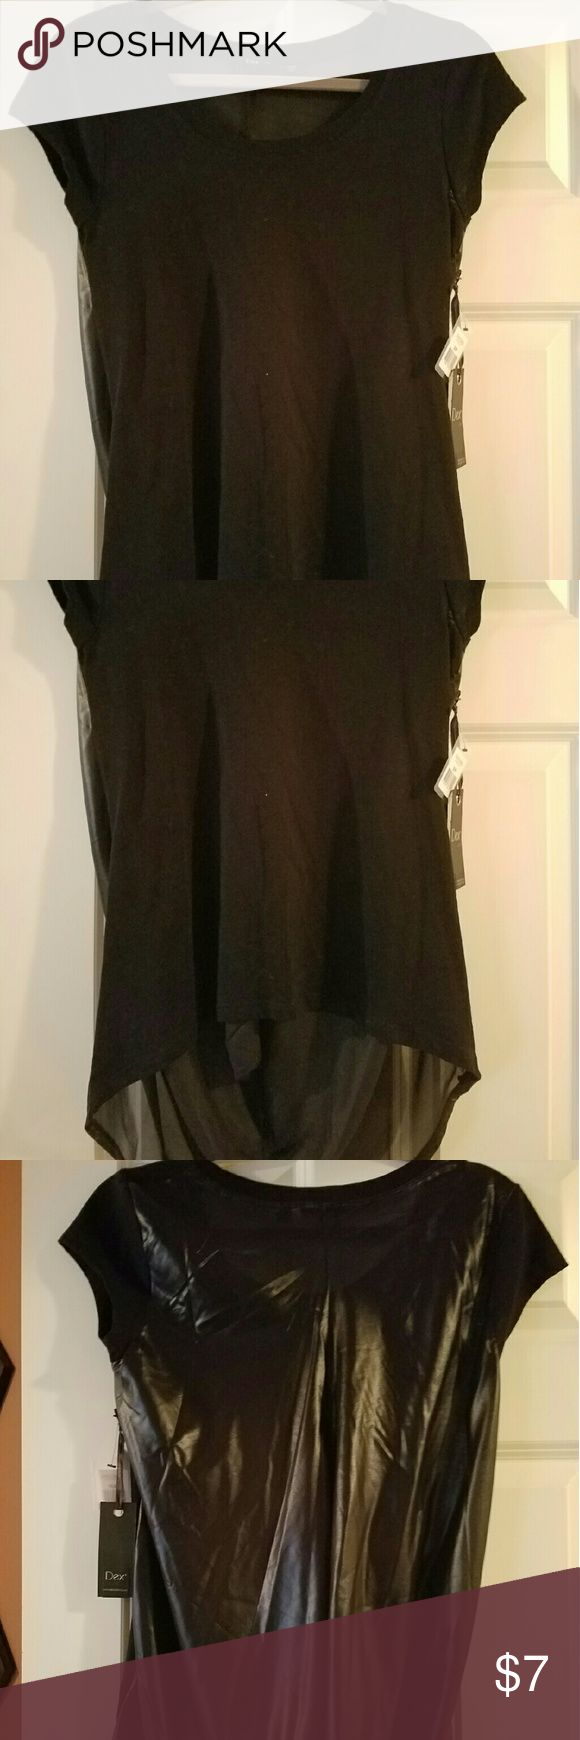 NWT, hi-low shirt, shiny sheer back Sz small, front 60% cotton/40% poly, back 100% poly Dex Tops Tunics